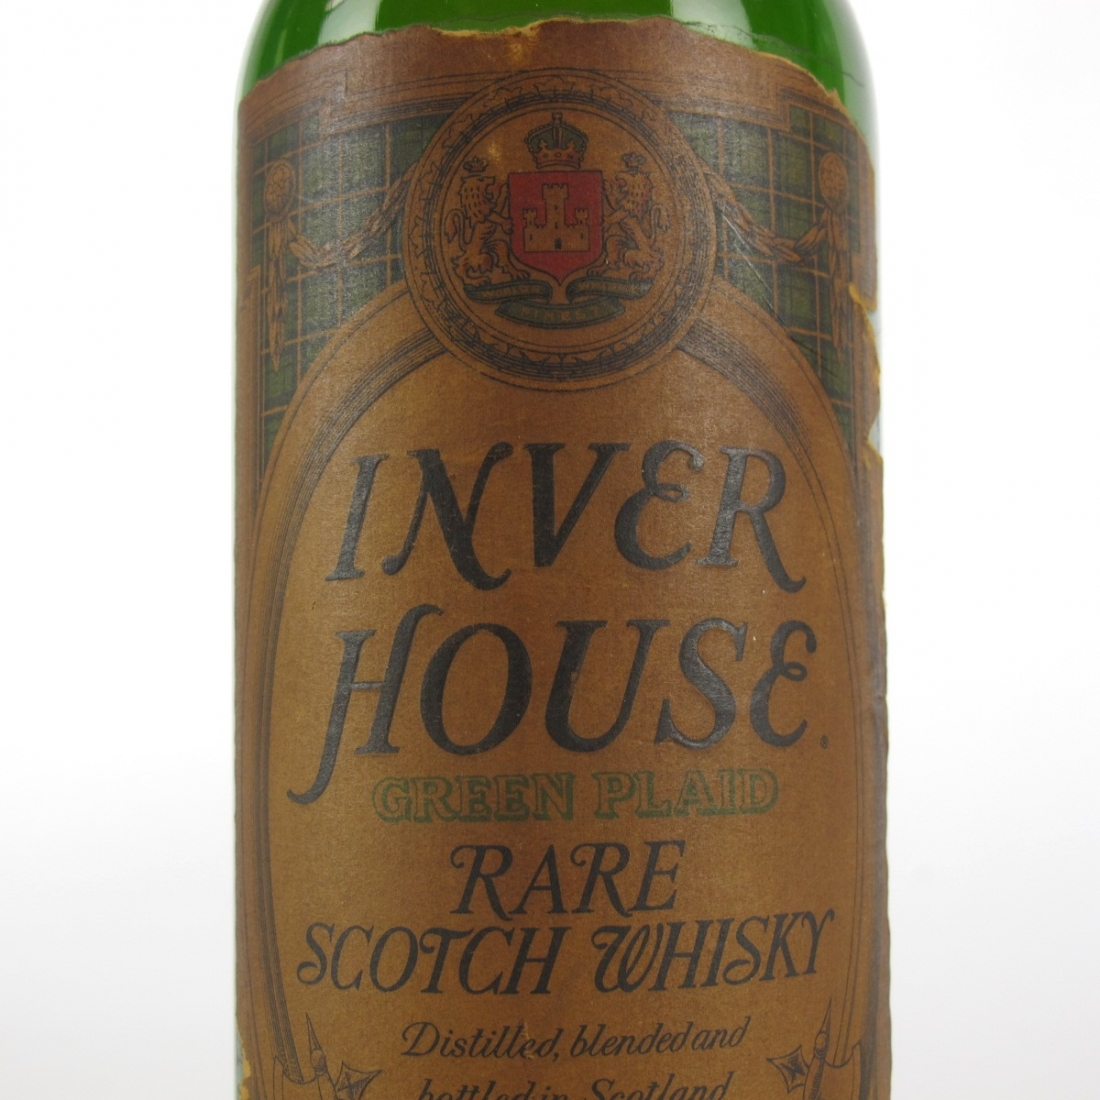 Inverhouse Green Plaid 1970s